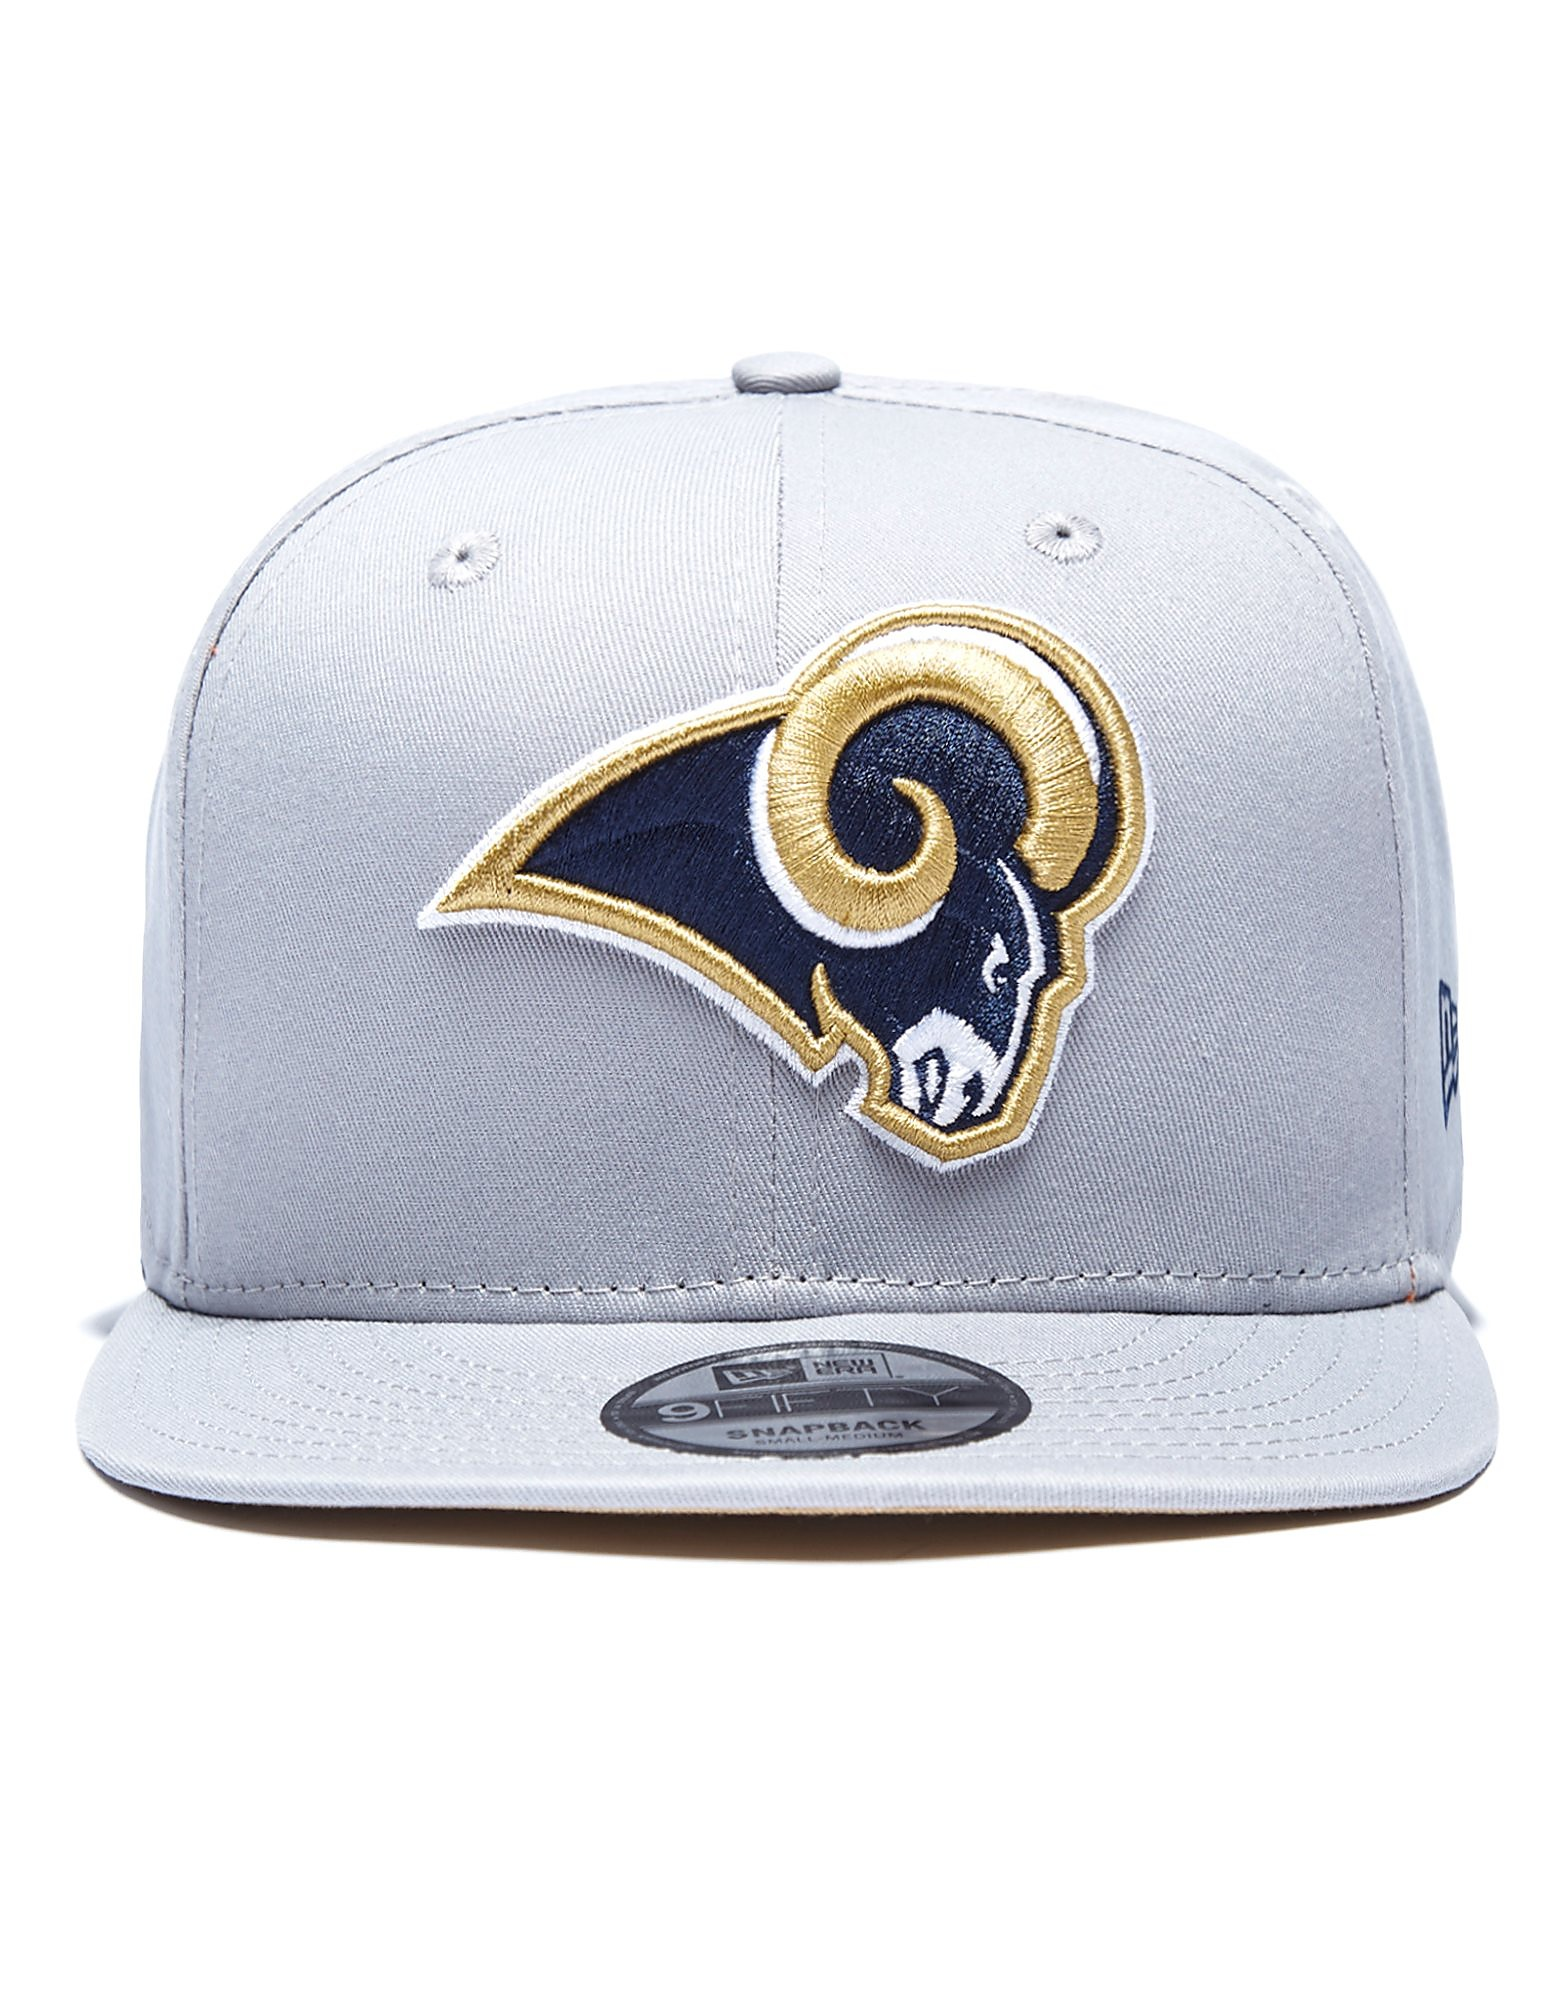 New Era 9FIFTY NFL Los ANgeles Rams Snapback Cap